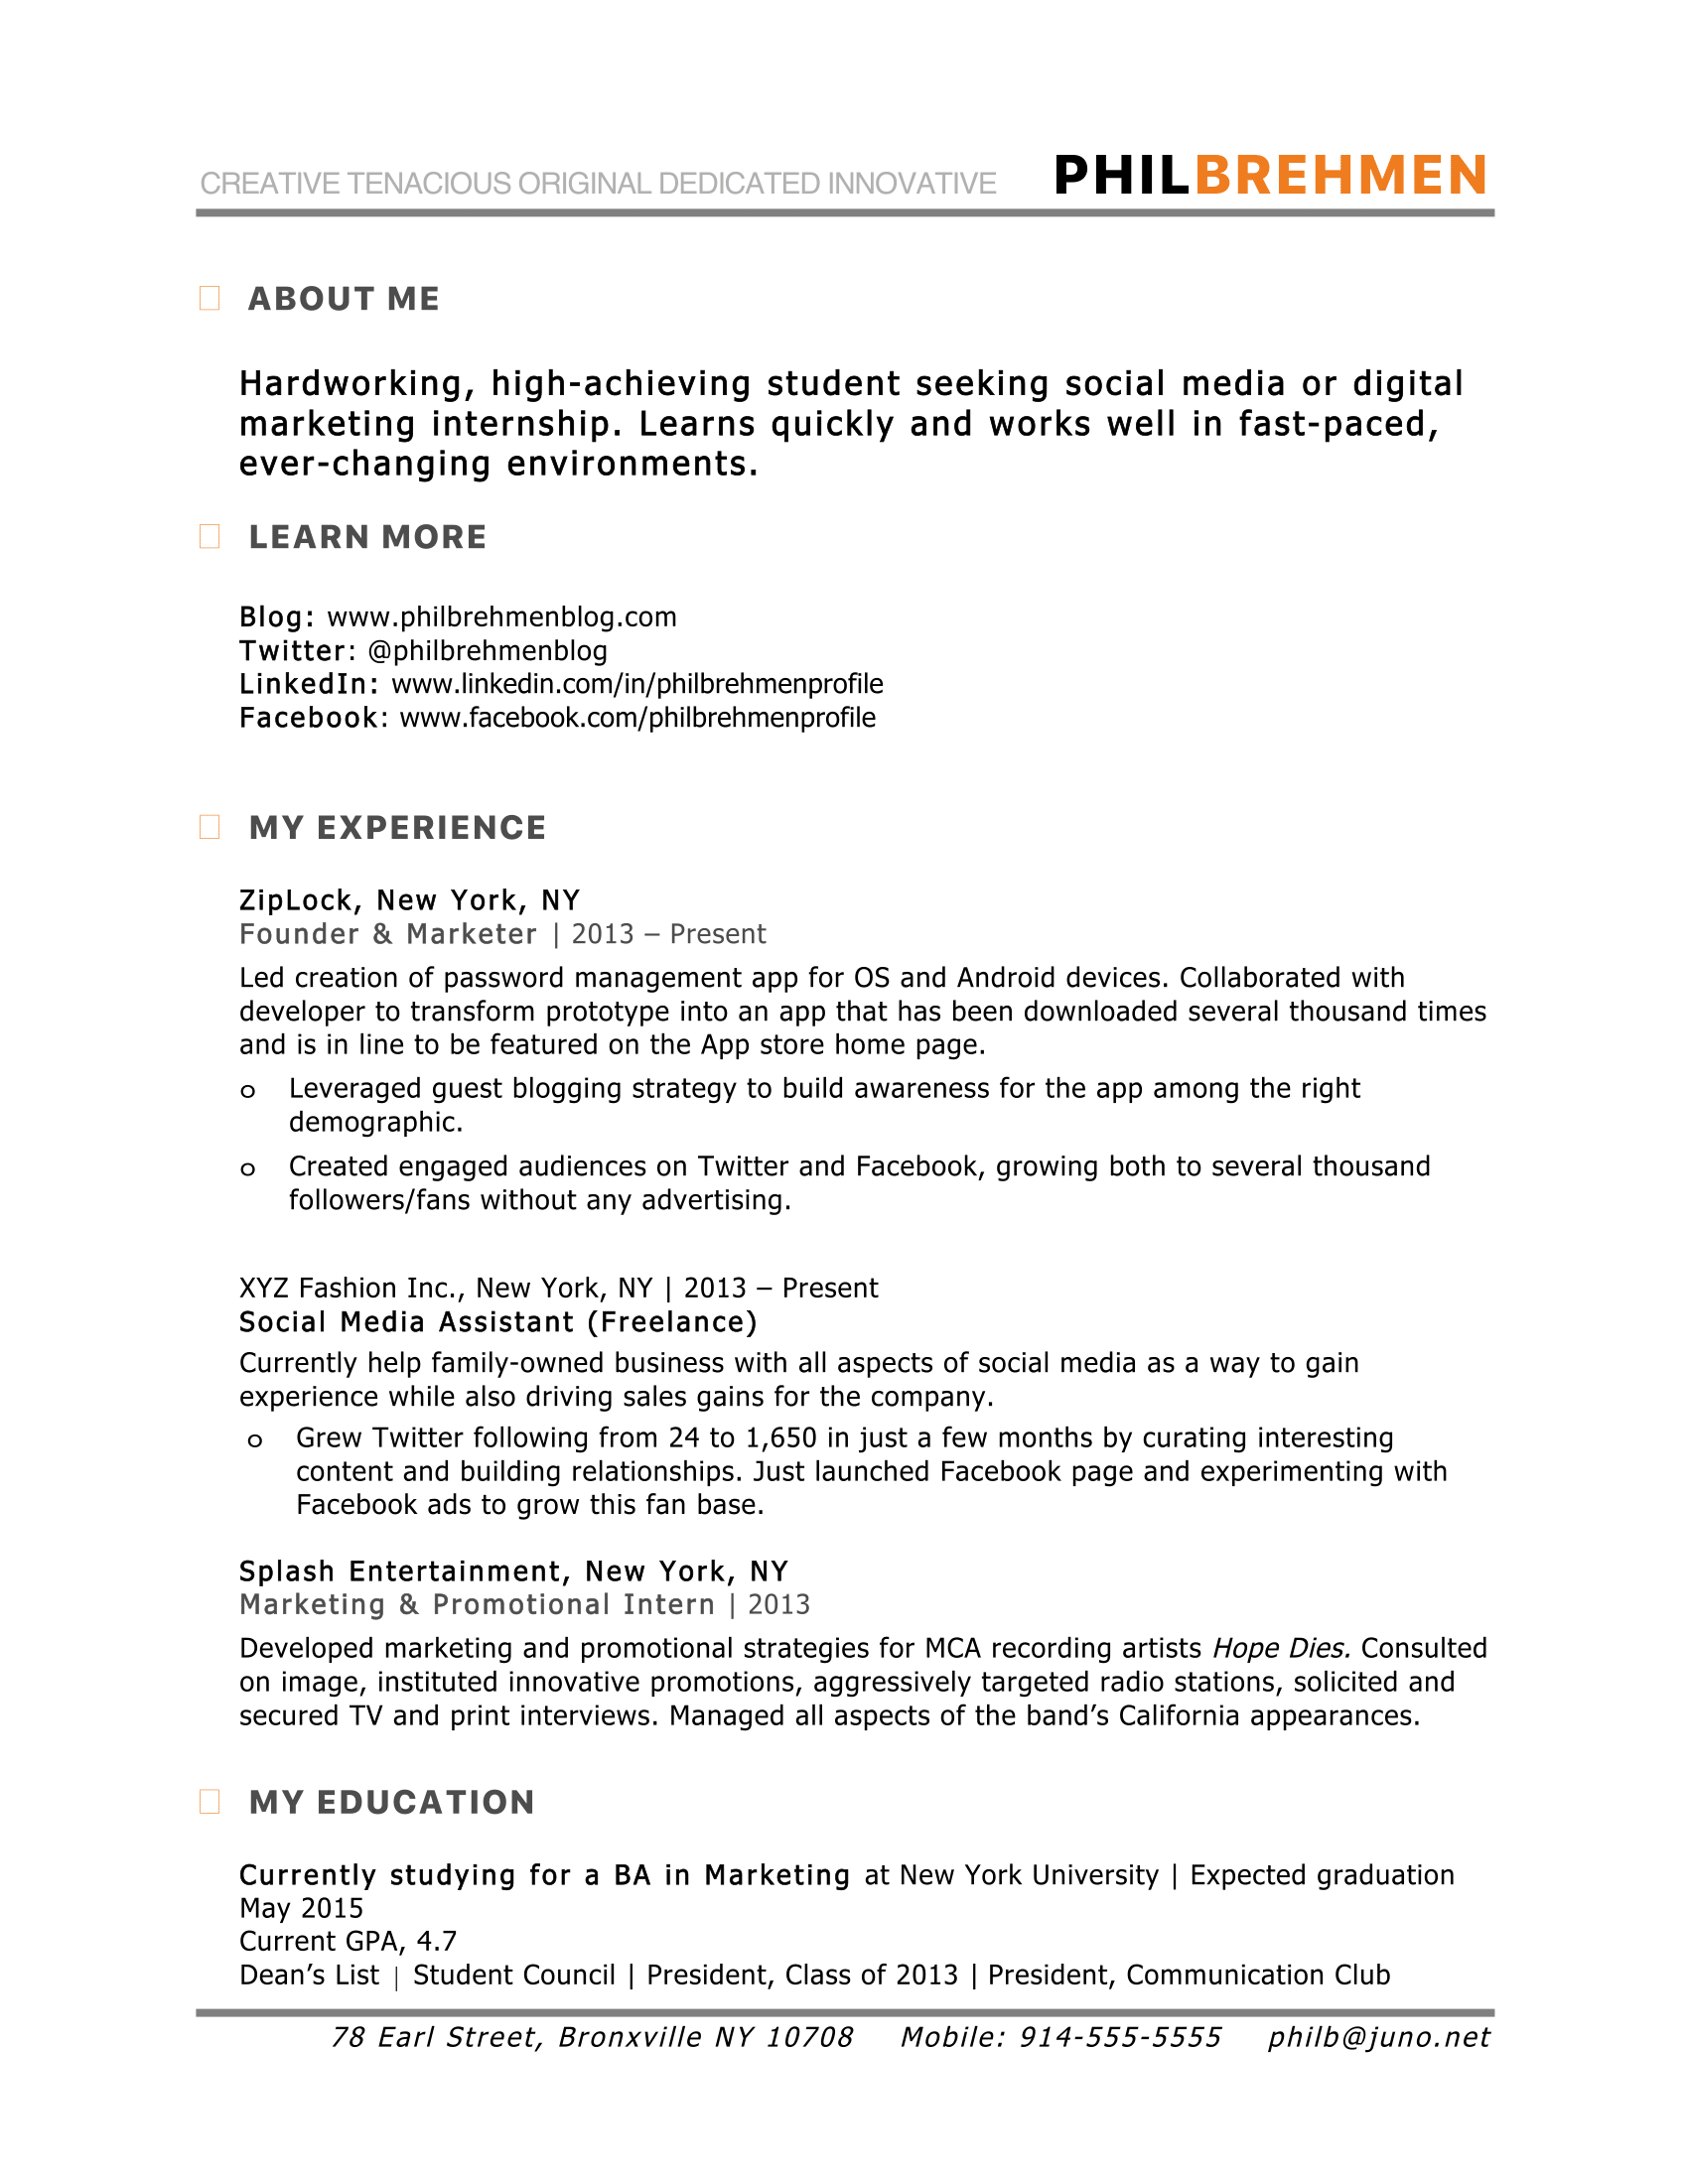 Inbound Marketing Intern-resume-sample | school | Pinterest